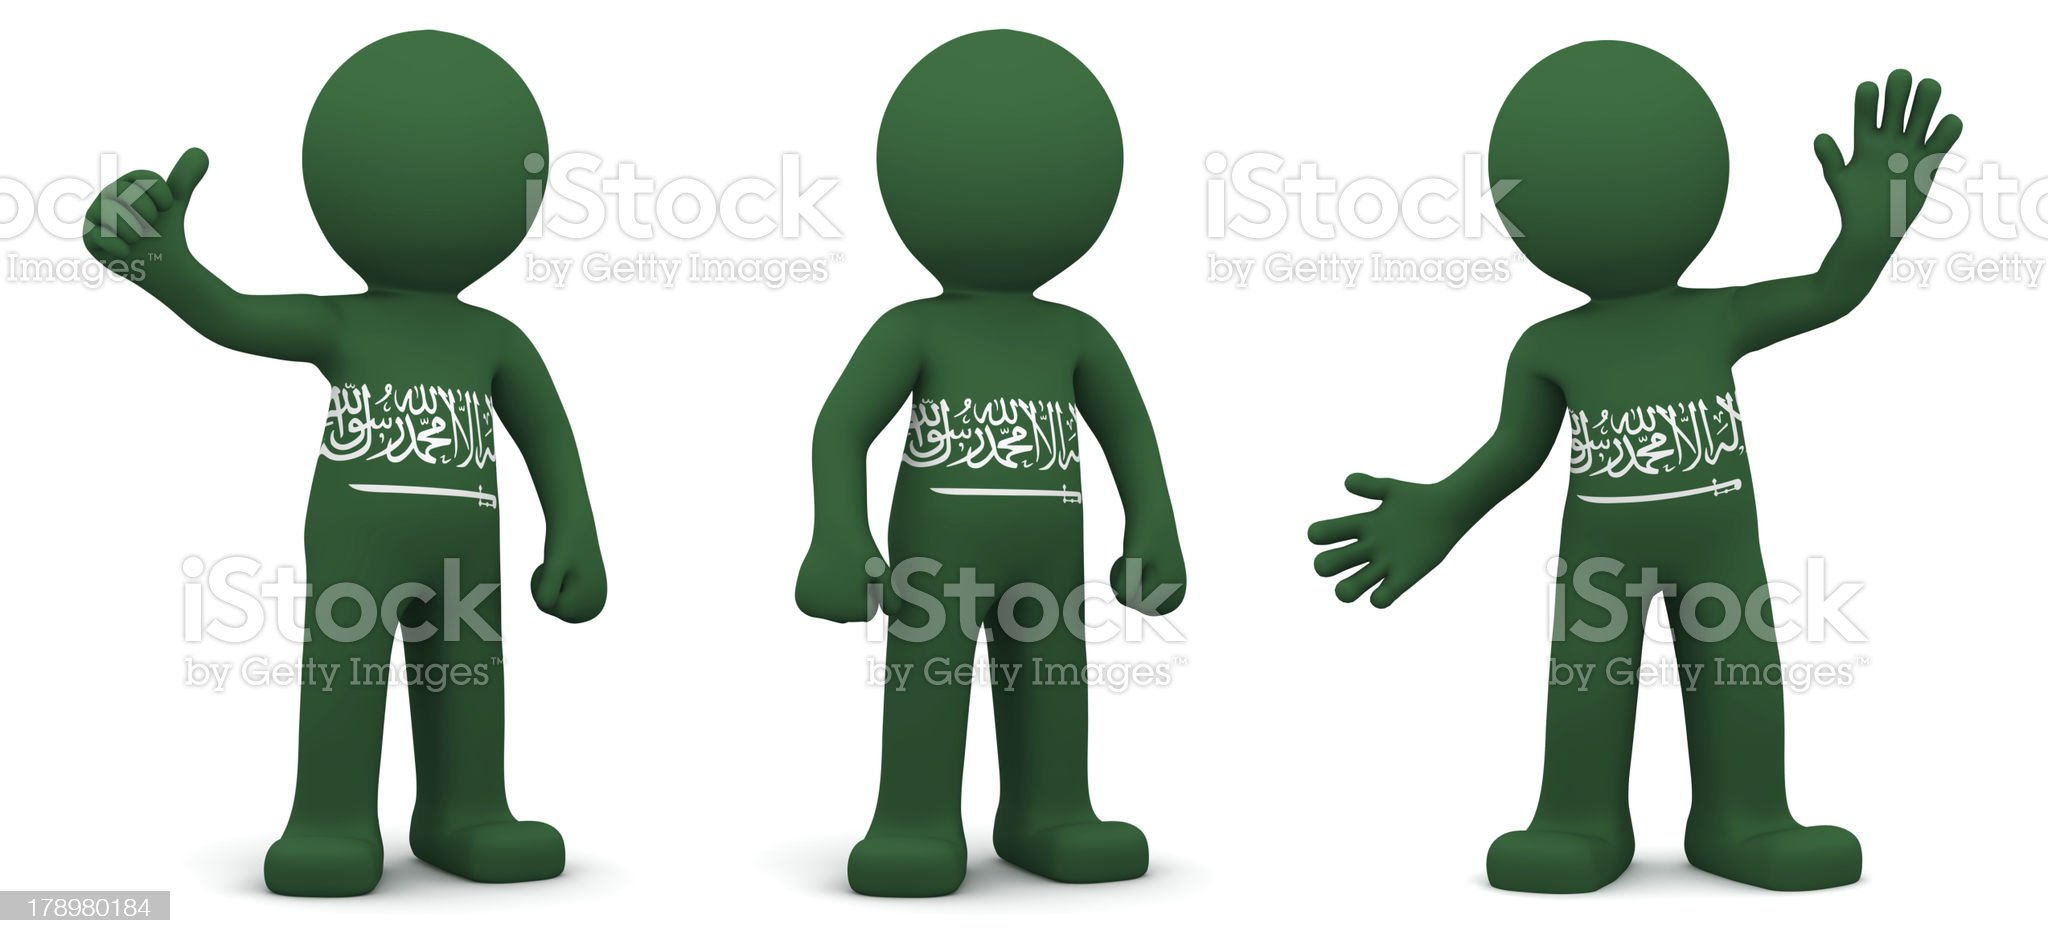 3d character textured with flag of Saudi Arabia royalty-free stock photo